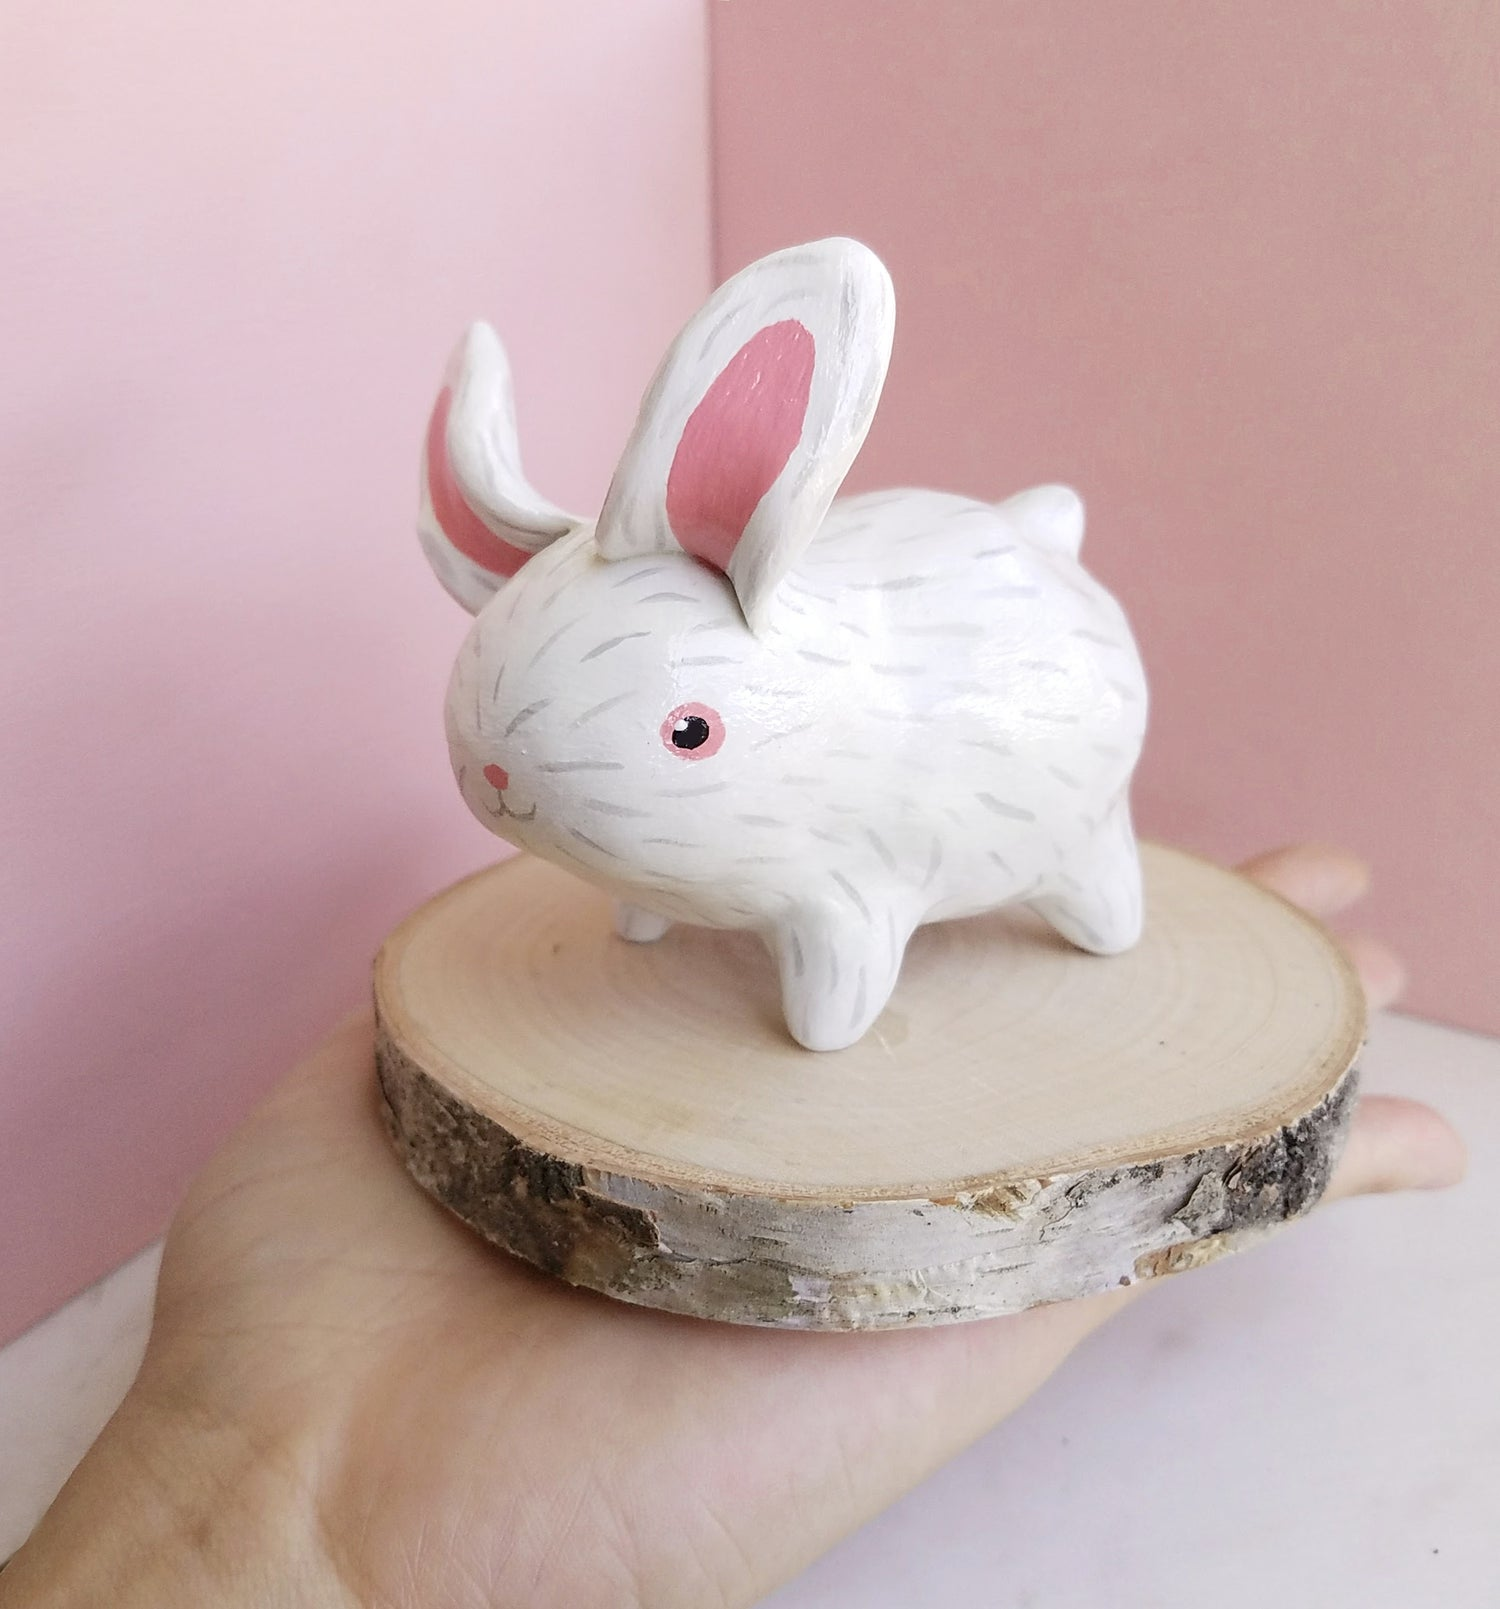 Image of Chubby Bunny Sculpture